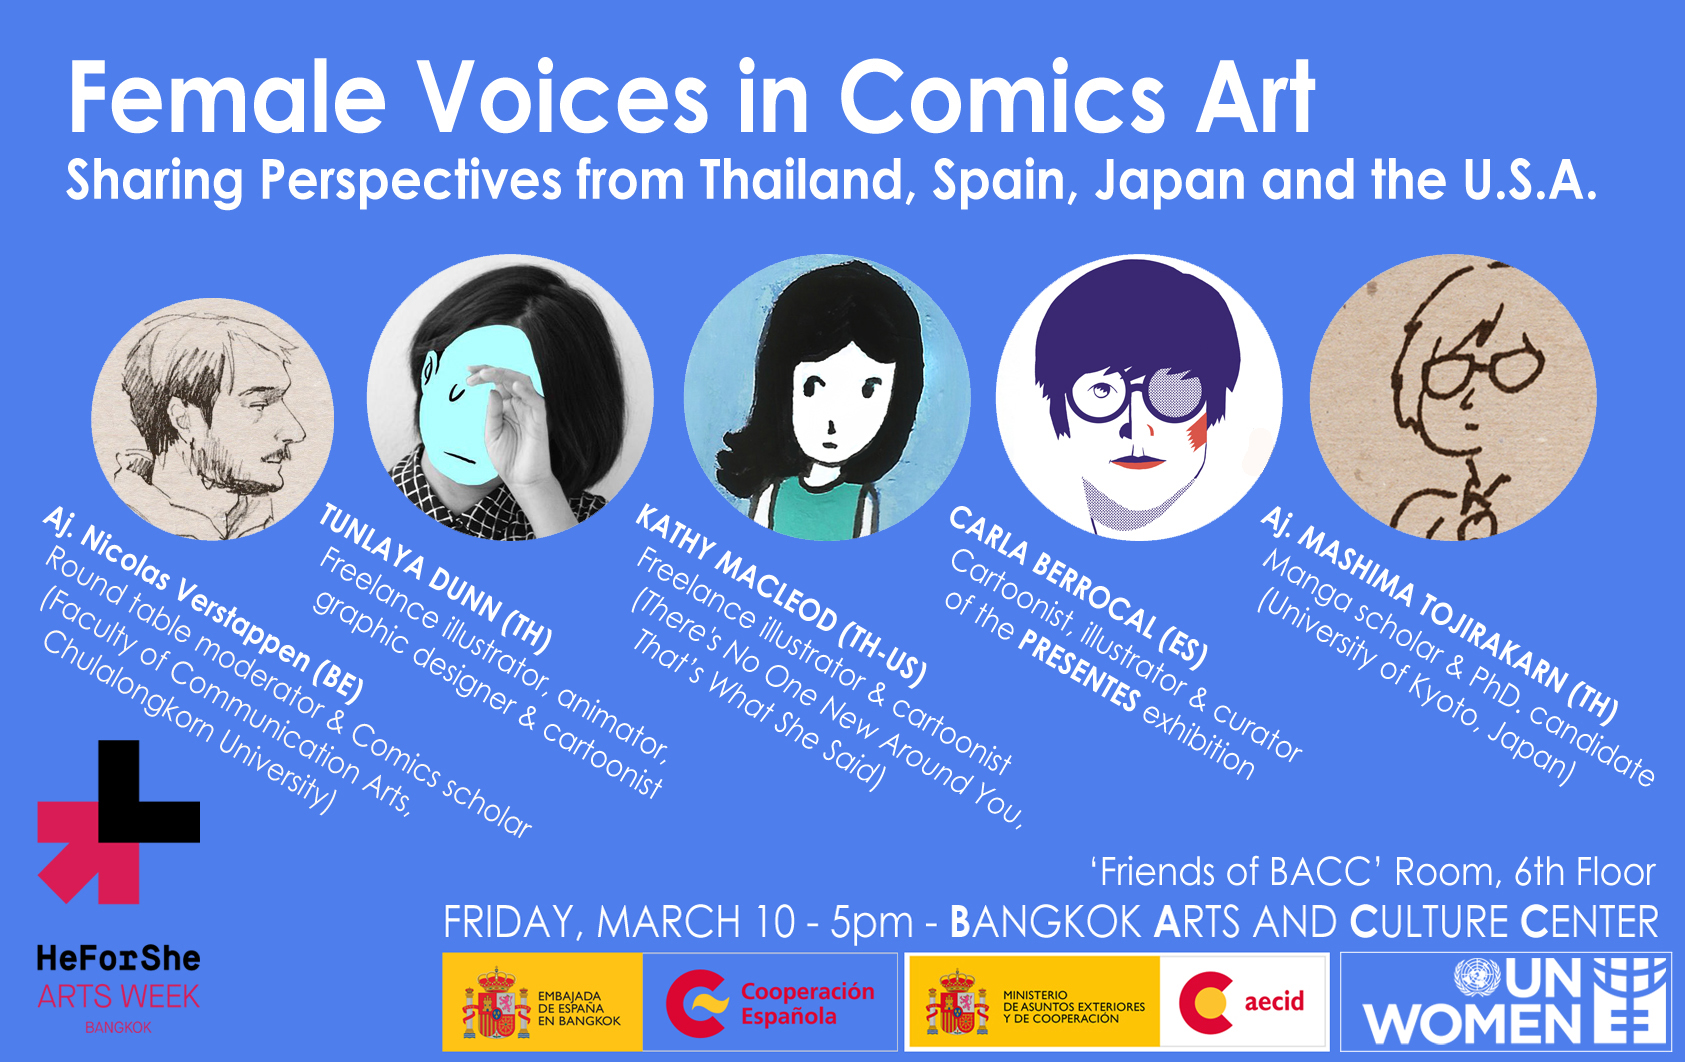 FEMALE VOICES IN COMICS ART DEF copy